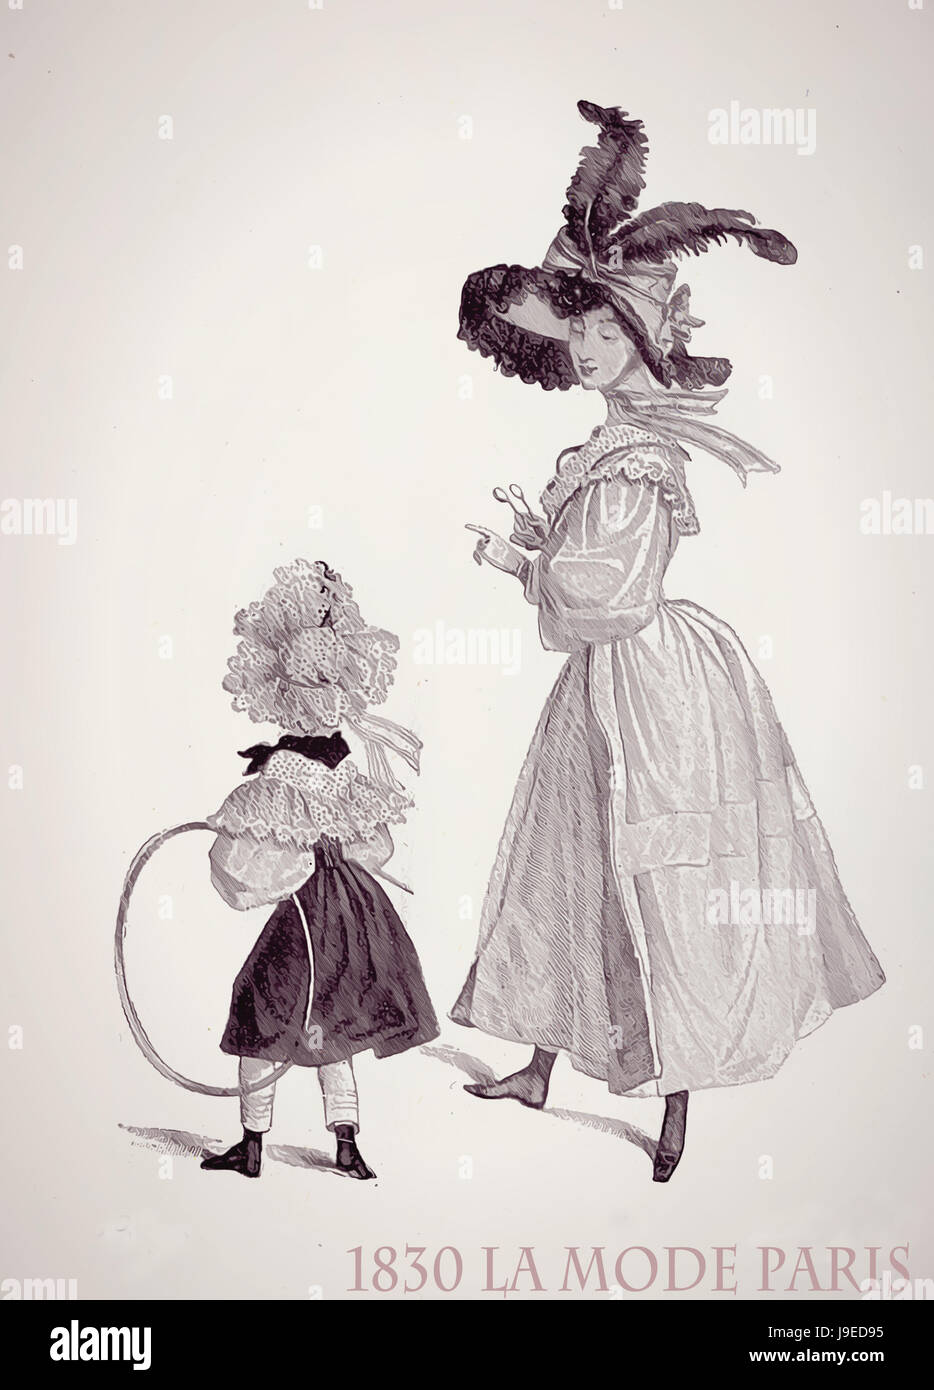 Paris 1830 ladies fashion outdoors, young lady and little daughter with fancy dress, laces and frills ready for - Stock Image